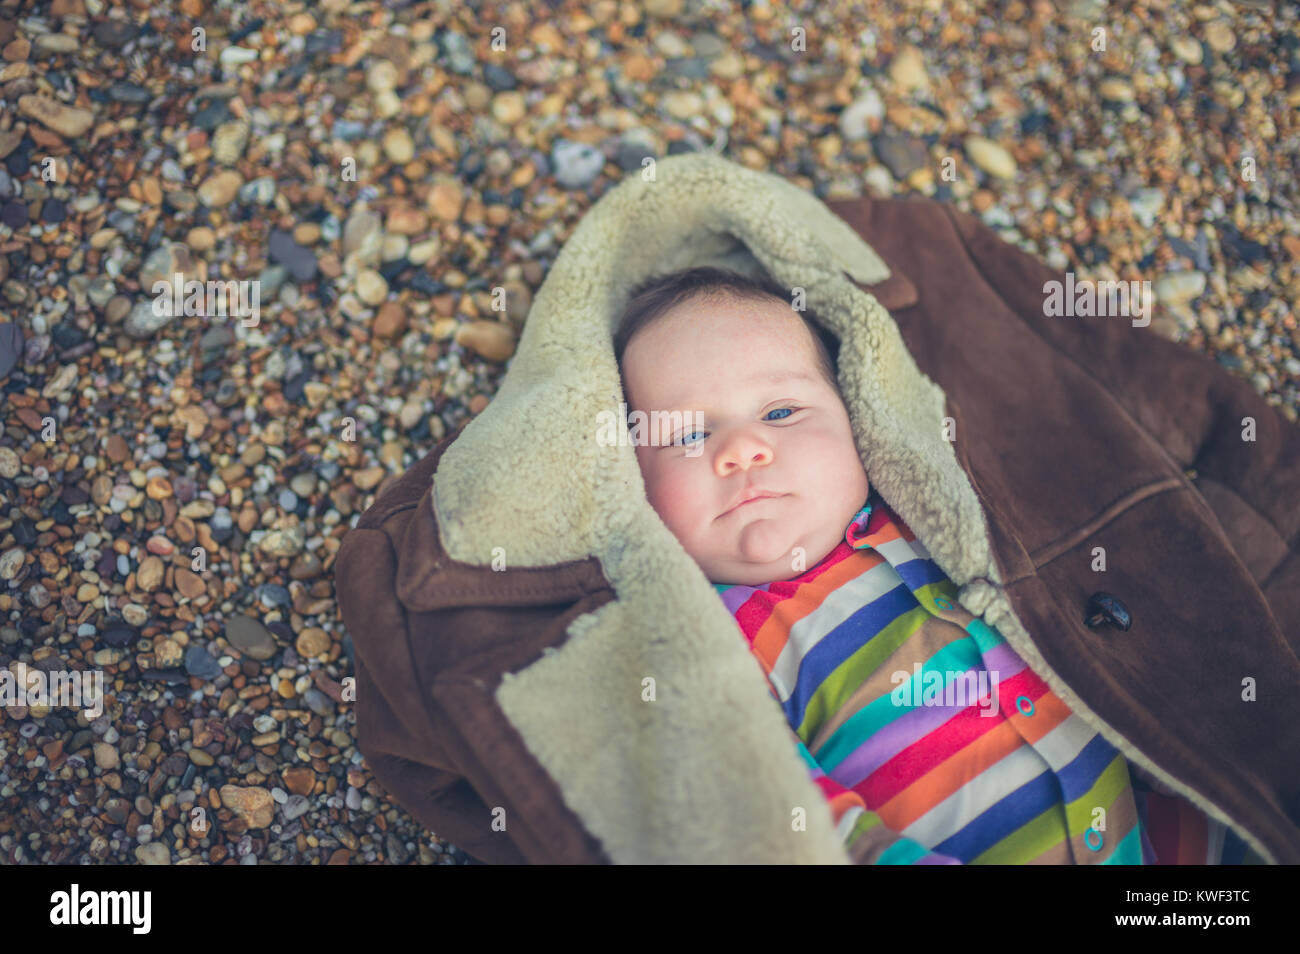 A little baby is wrapped up in a coat on the beach - Stock Image